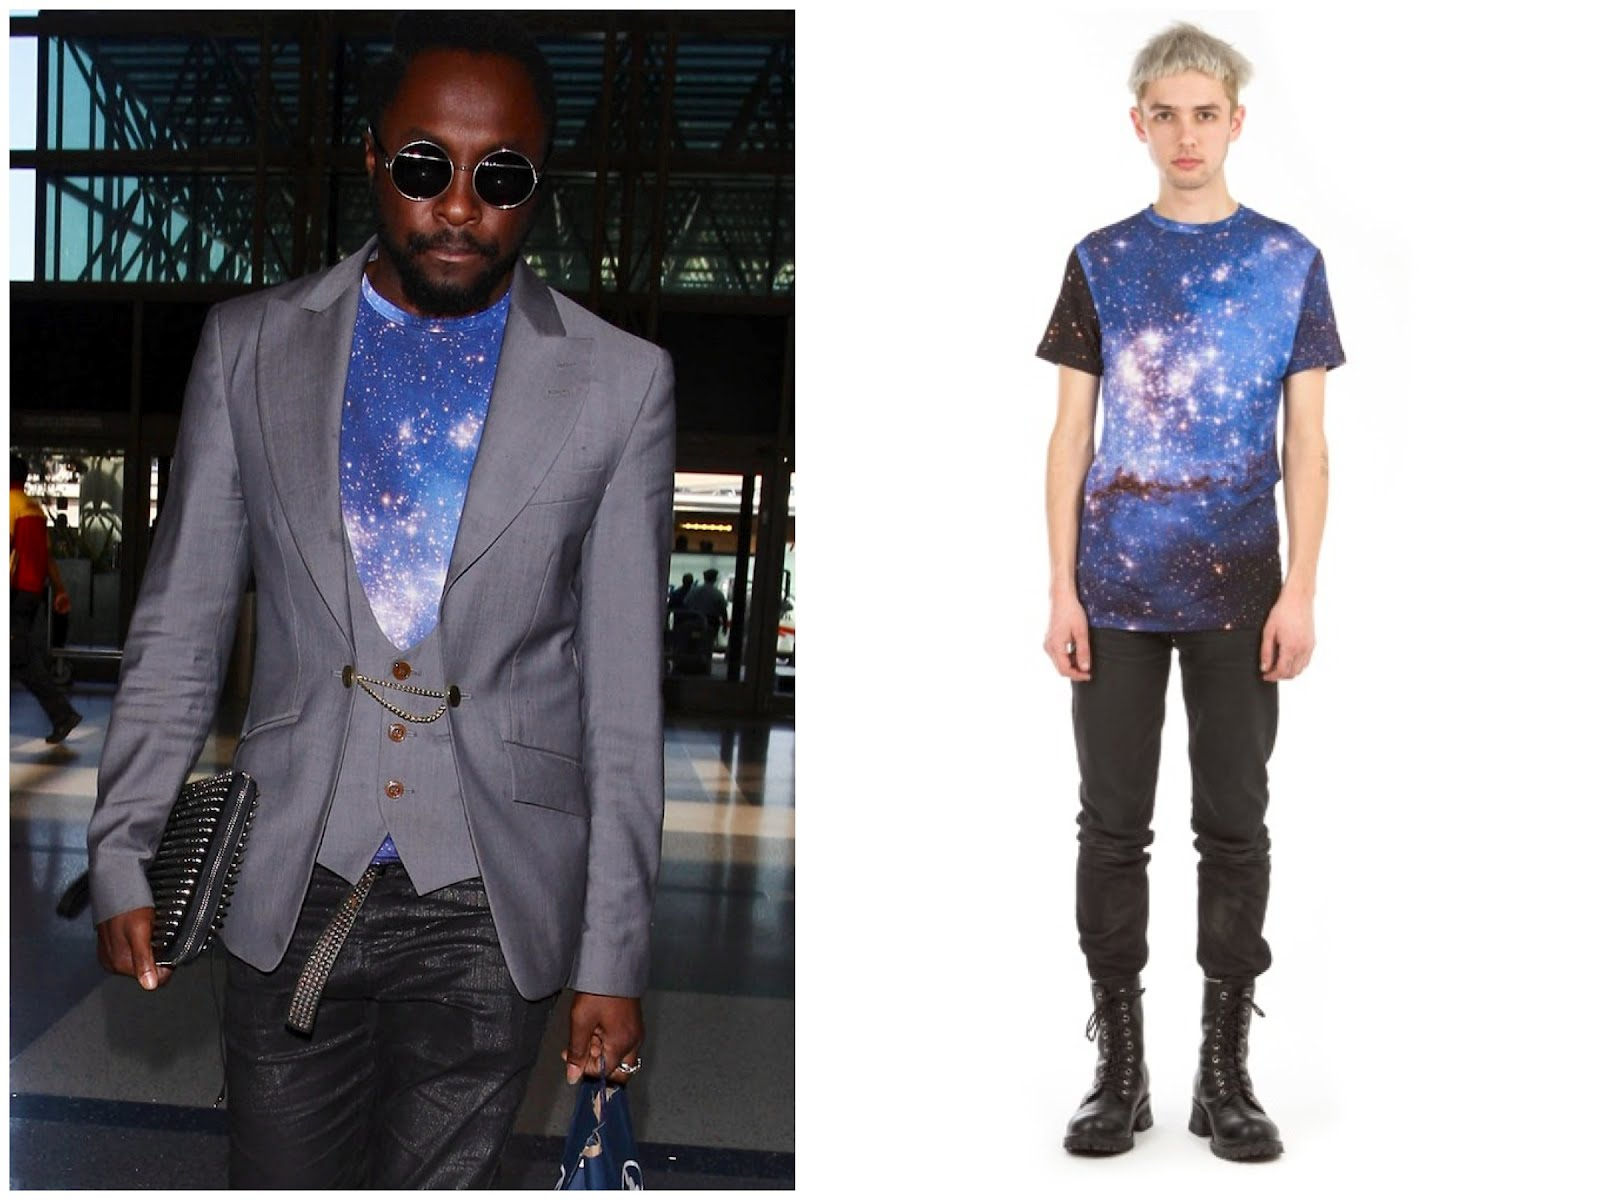 00o00 London Menswear Blog celebrity style Will.i.am in Vivienne Westwood and Christopher Kane - LAX Airport Los Angeles, California Farfetch.com